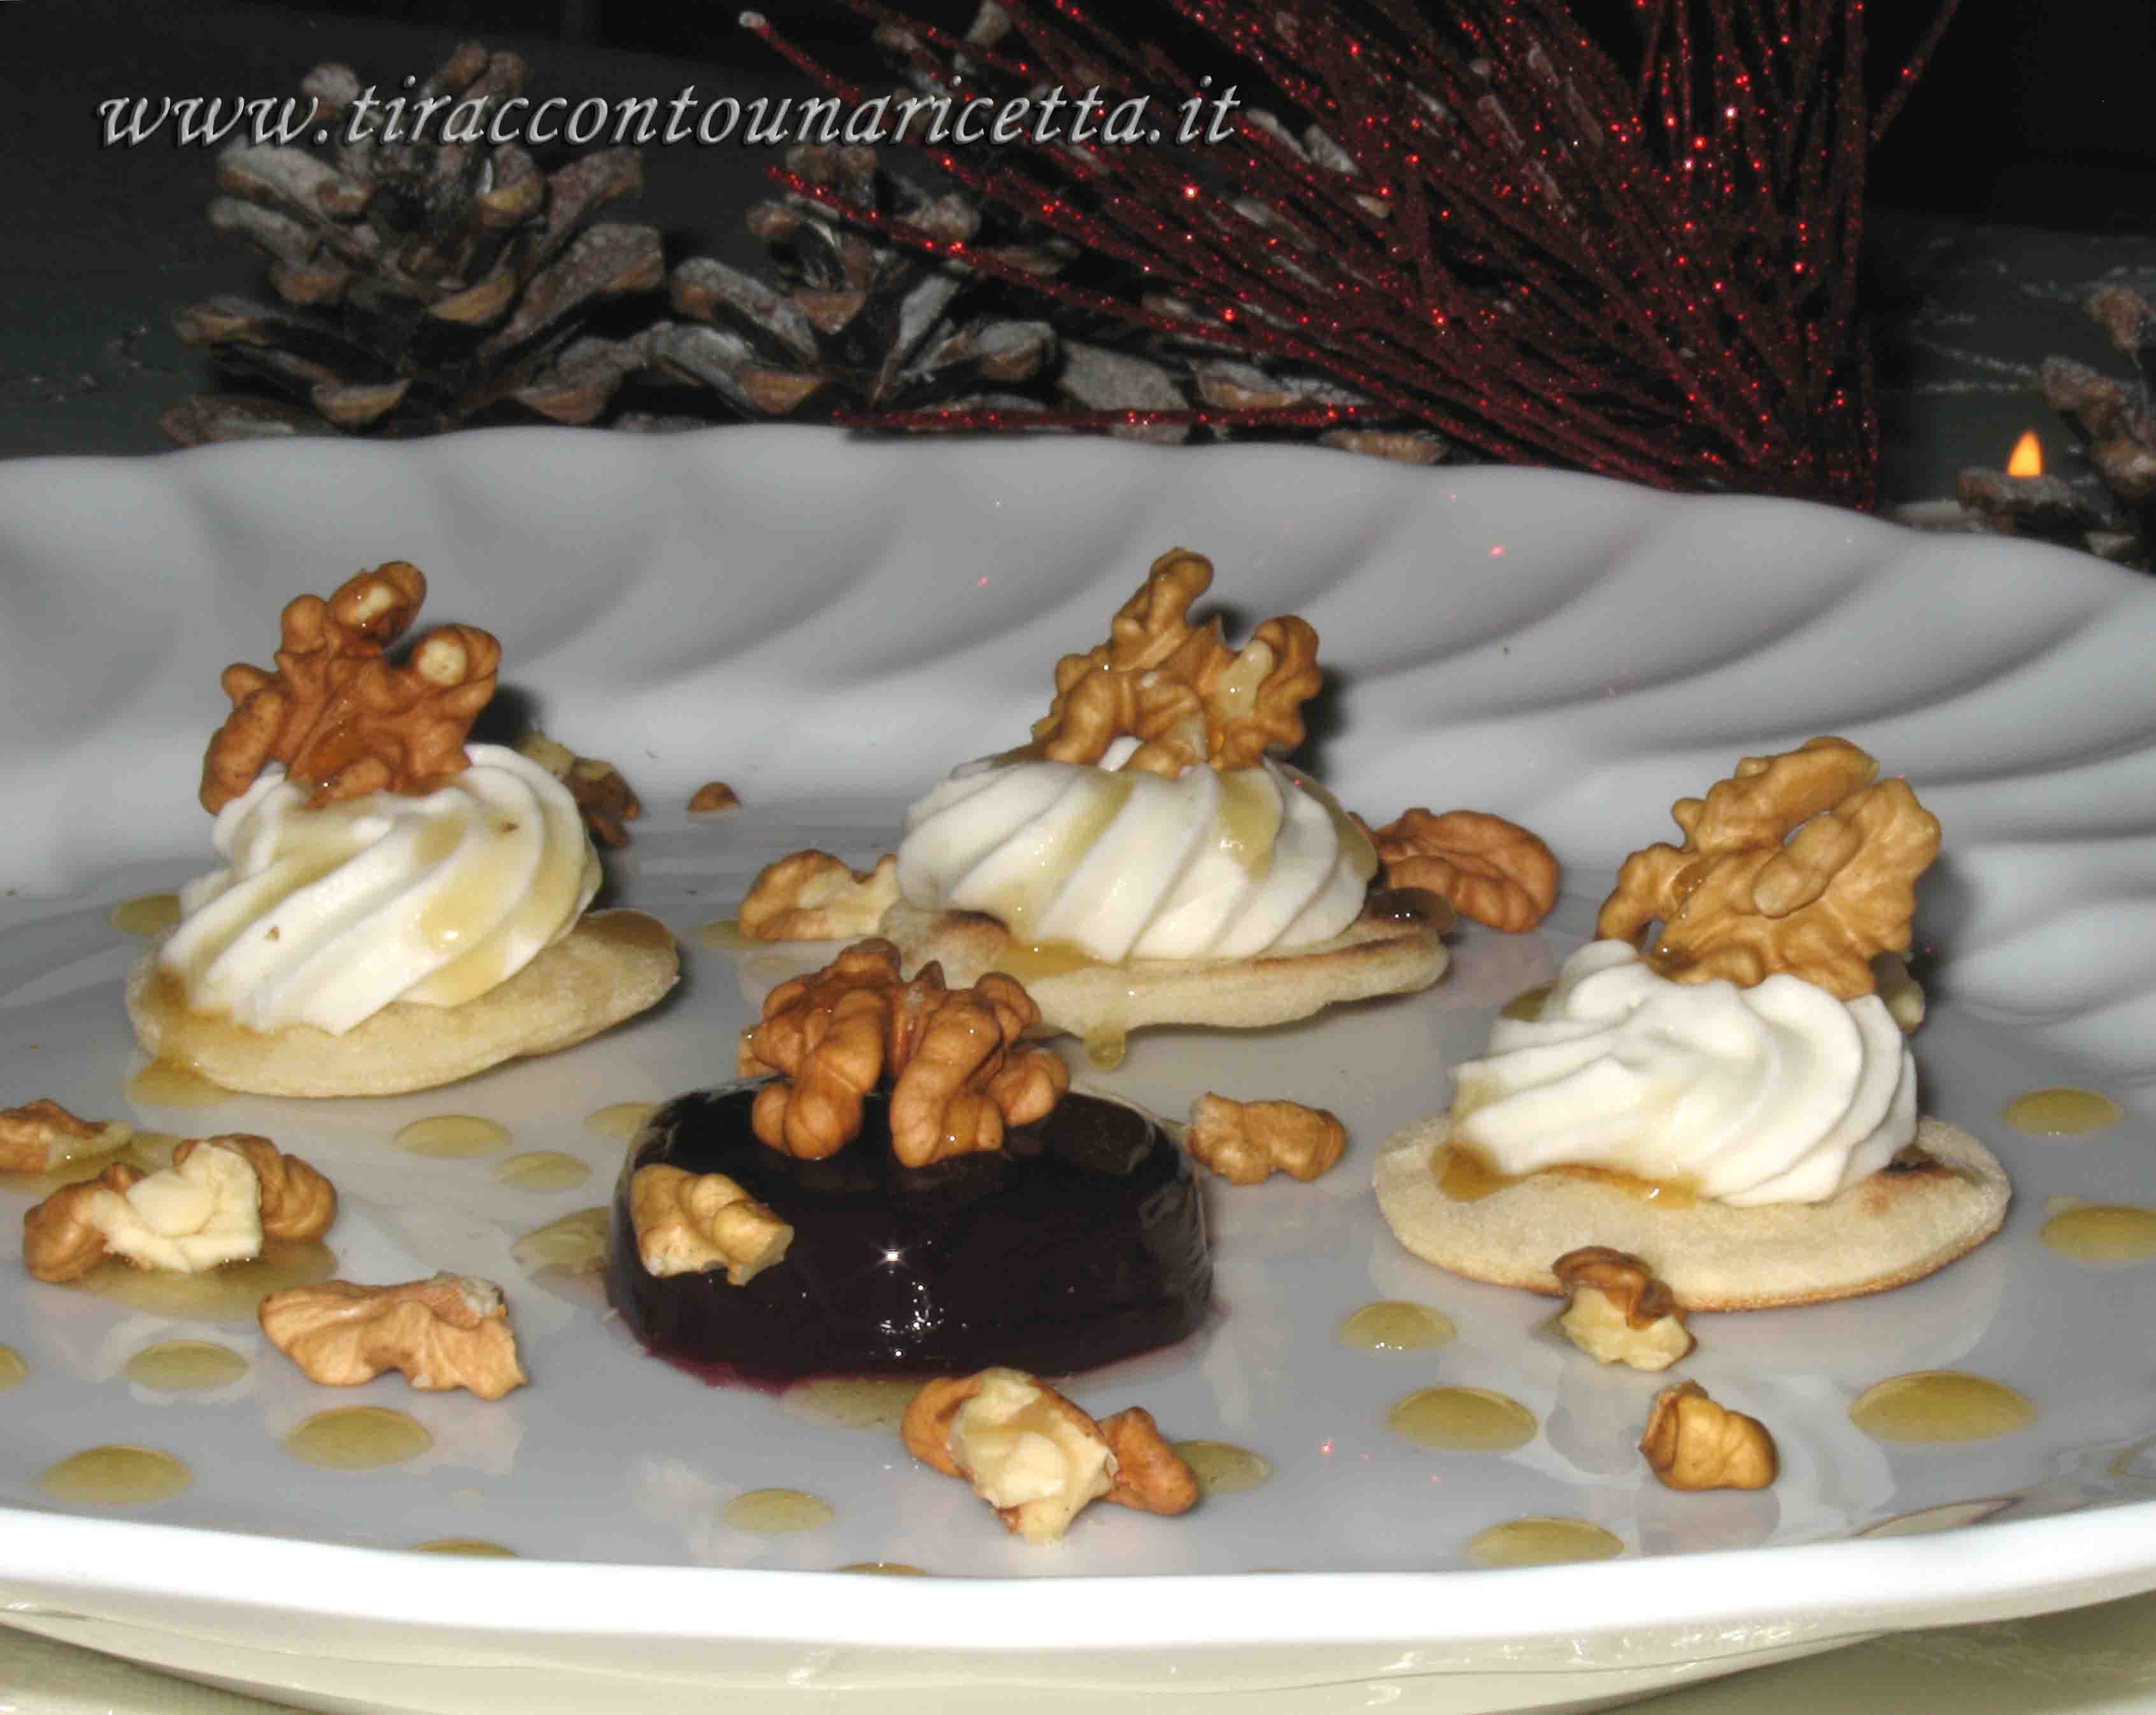 Gorgonzola Mousse with walnuts and wine gele